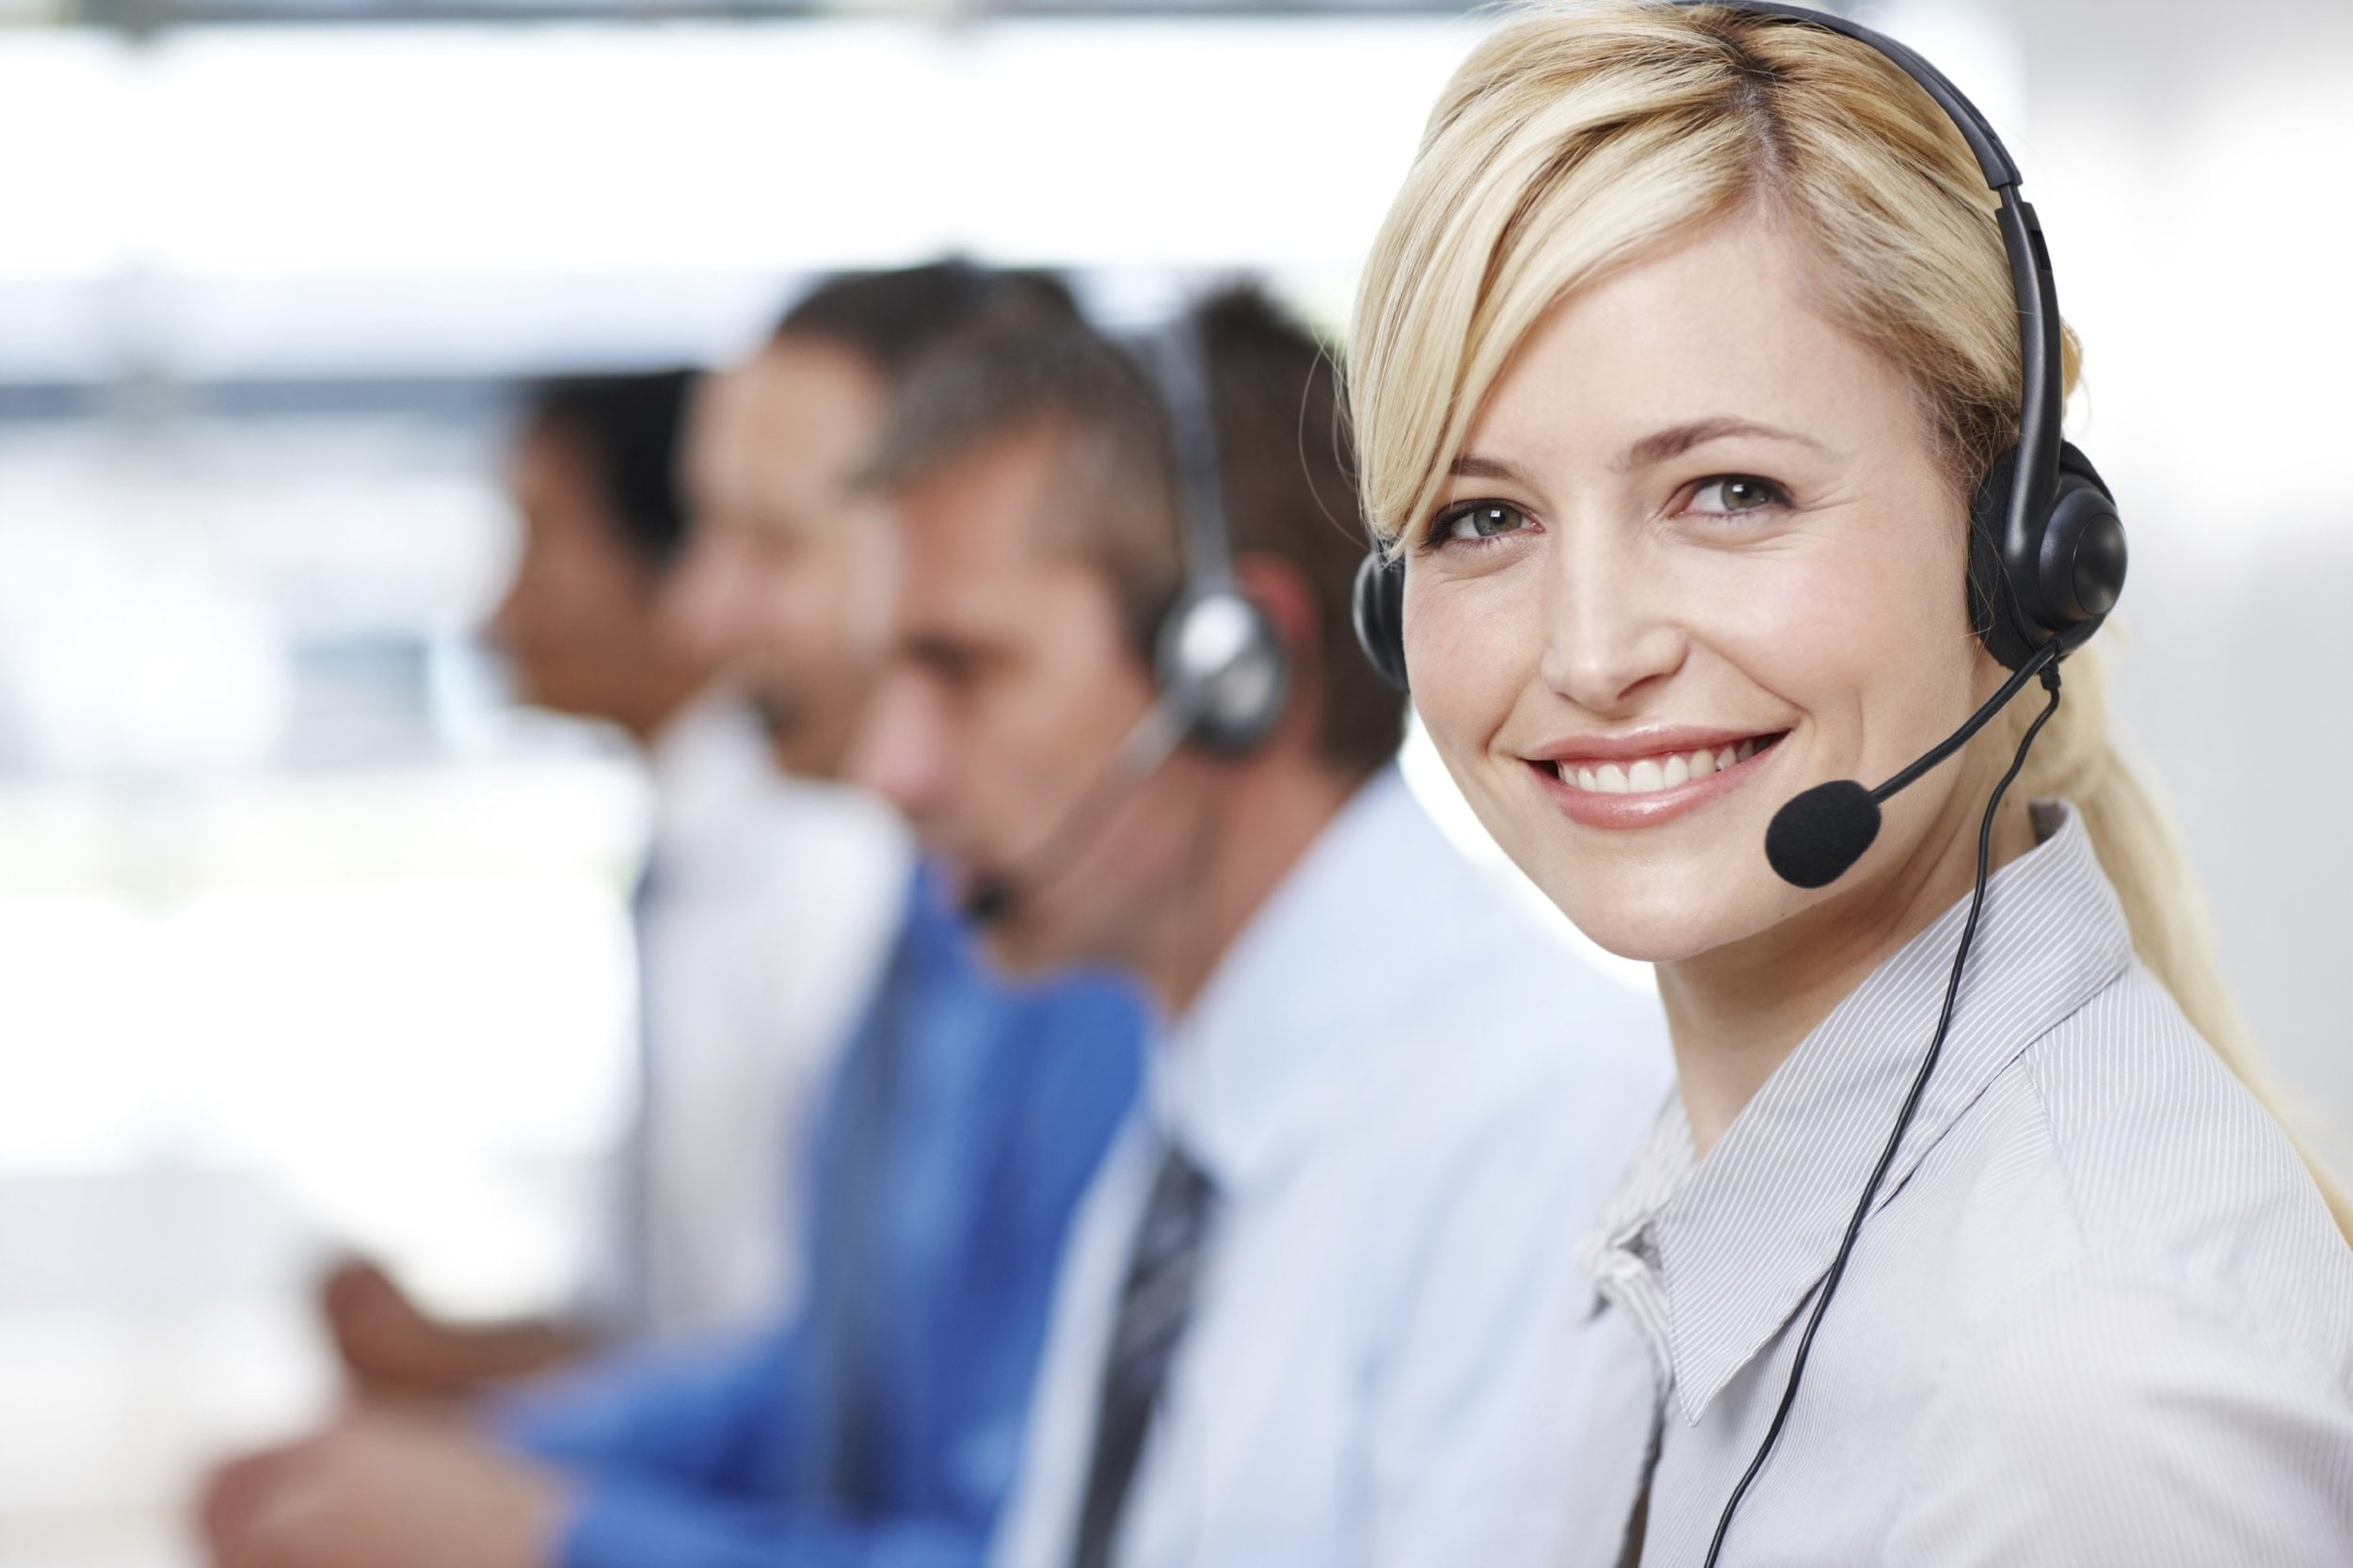 call-center-woman-smiling.jpg